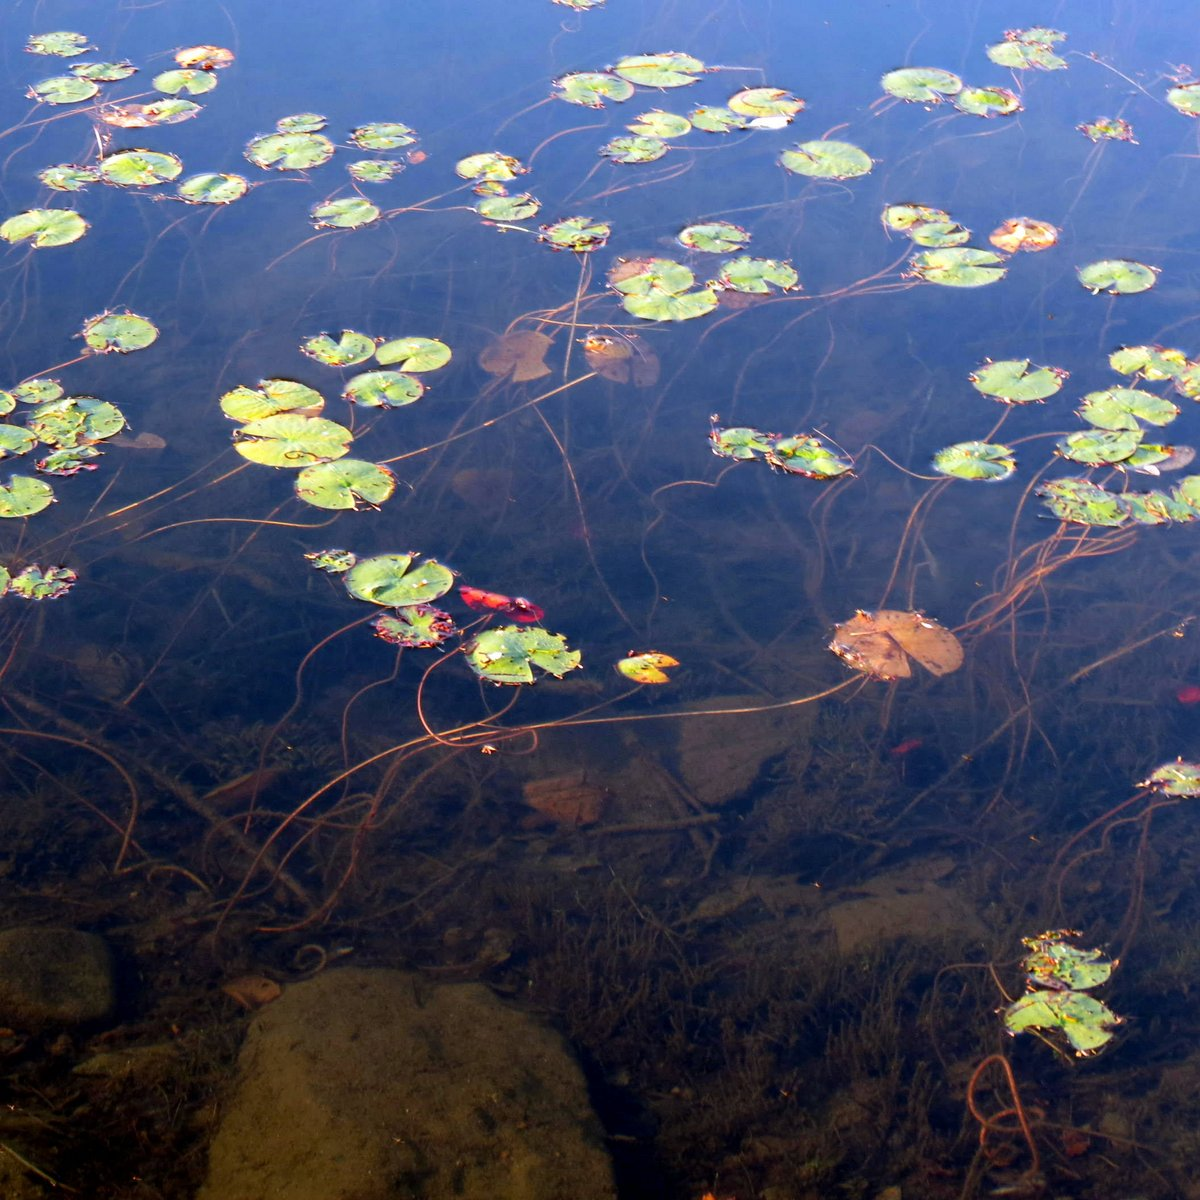 12. Water Lily Stems